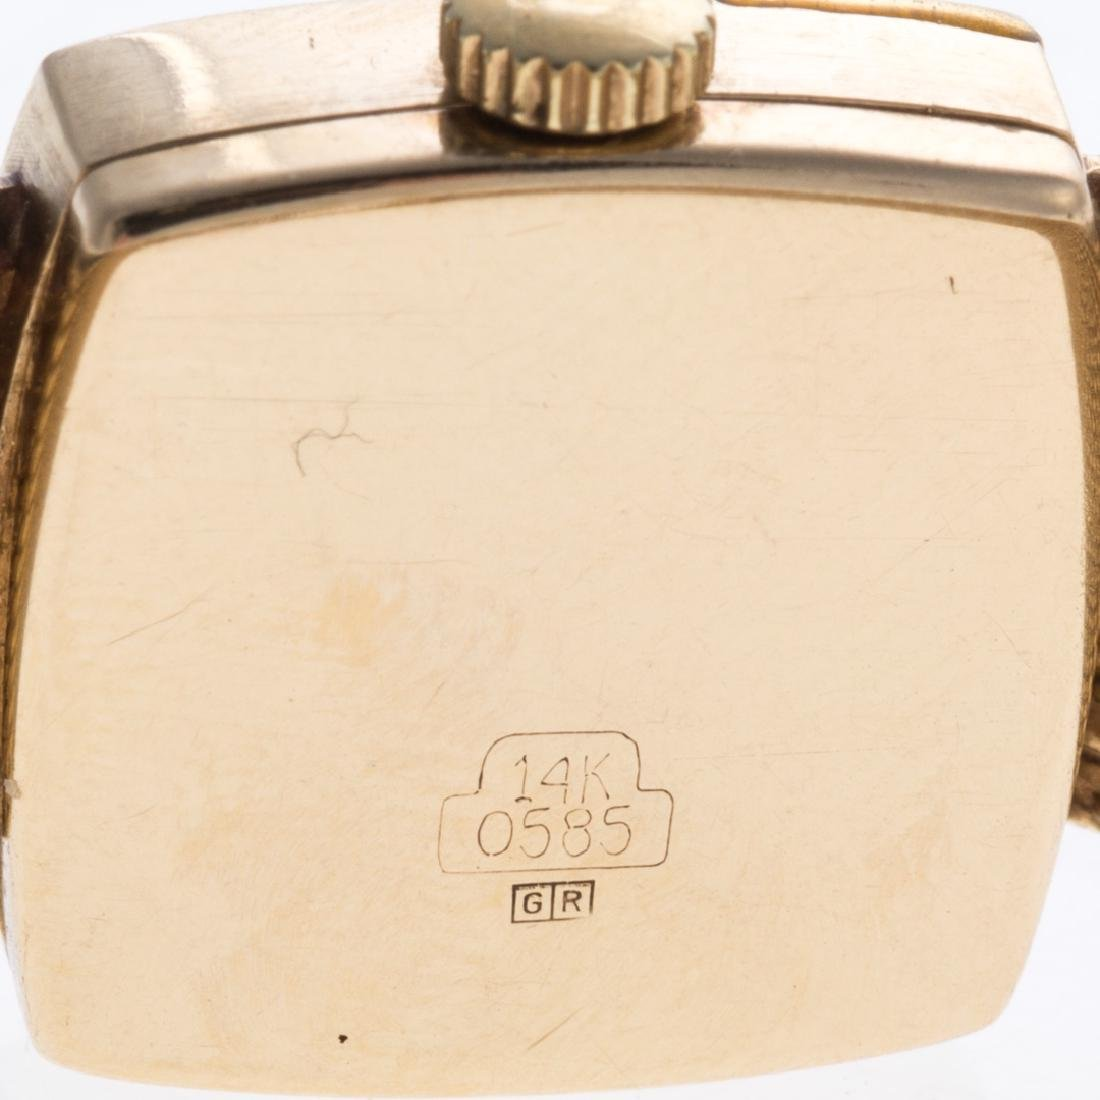 A Lady's 14K Merano & Two Tone Tissot Watches - 4